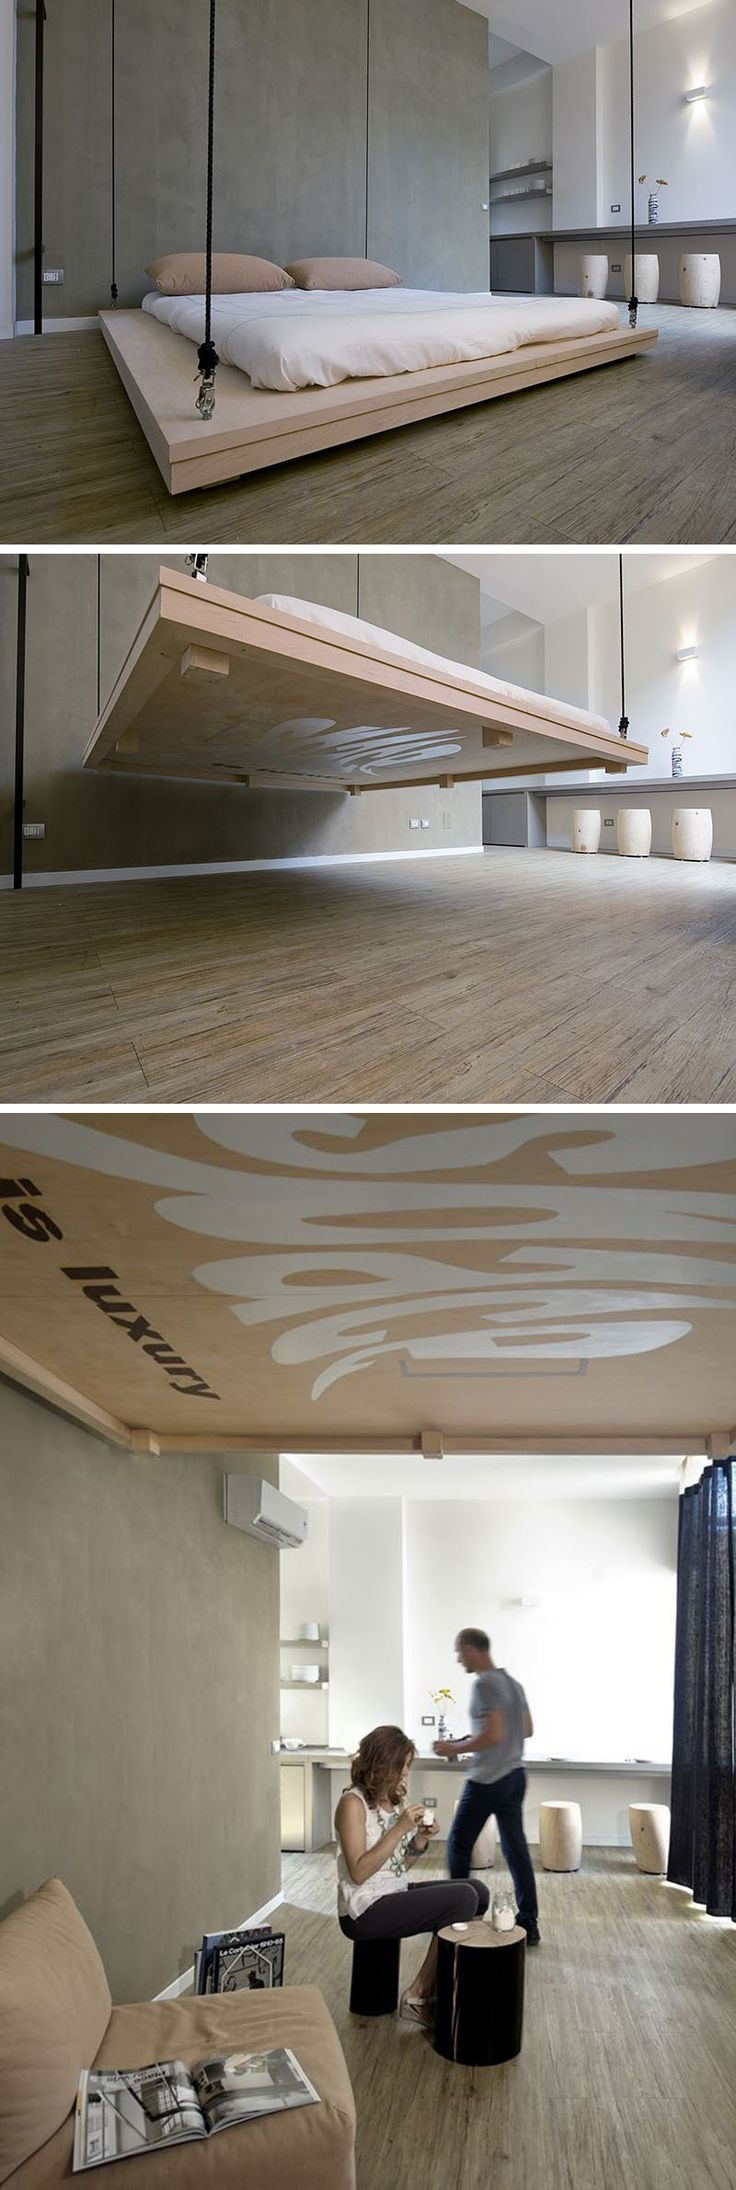 In this small apartment, the bed can be hoisted up to the ceiling to make way…